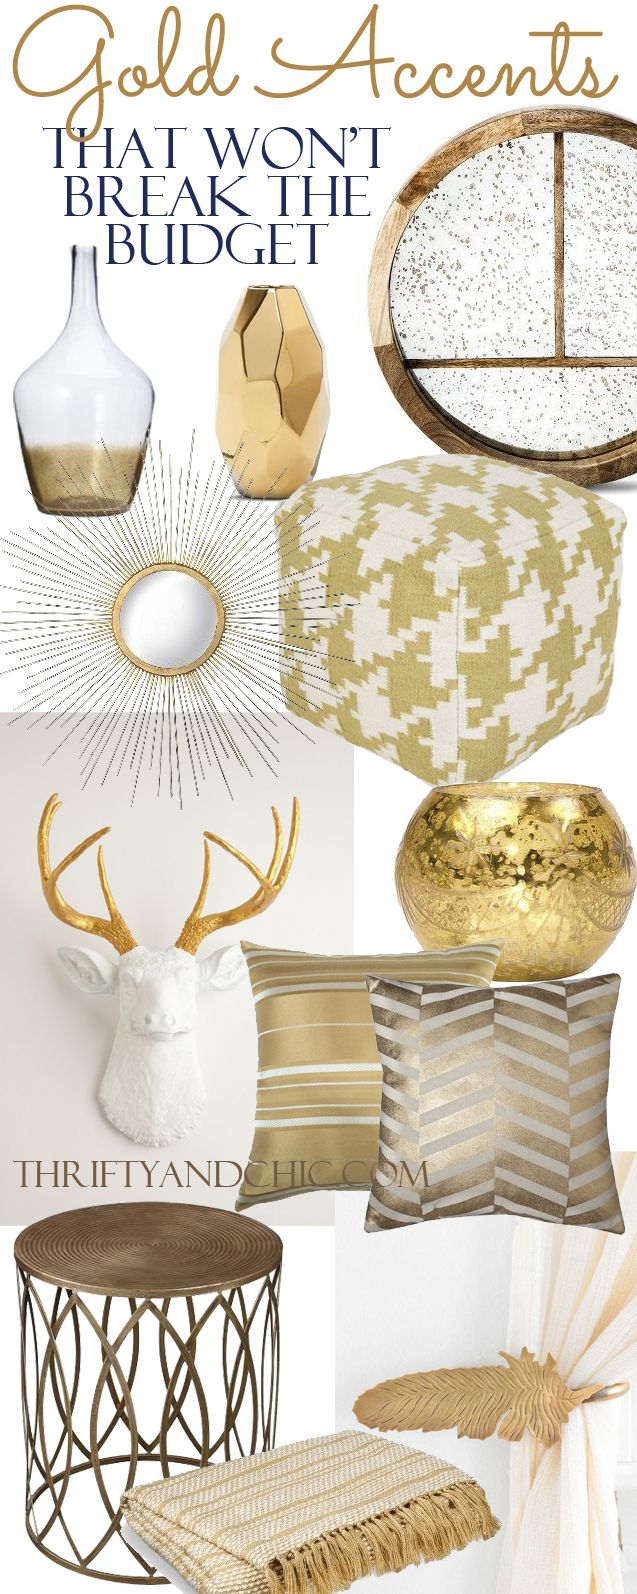 18 gold home decor pieces that wont breat the budget divided up into - Gold Home Decor